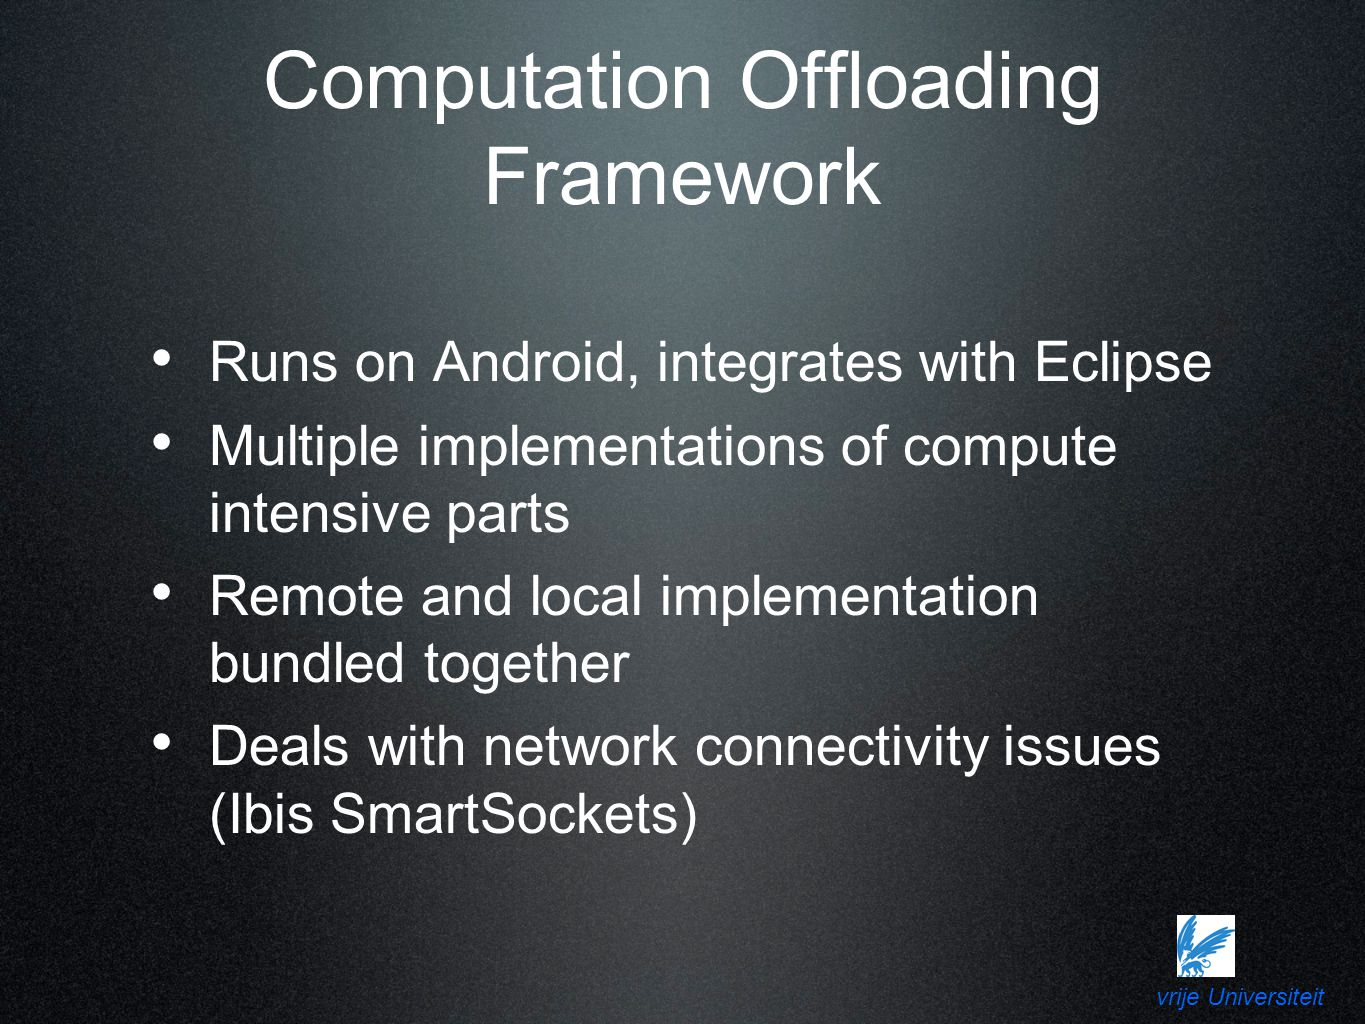 vrije Universiteit Computation Offloading Framework Runs on Android, integrates with Eclipse Multiple implementations of compute intensive parts Remote and local implementation bundled together Deals with network connectivity issues (Ibis SmartSockets)